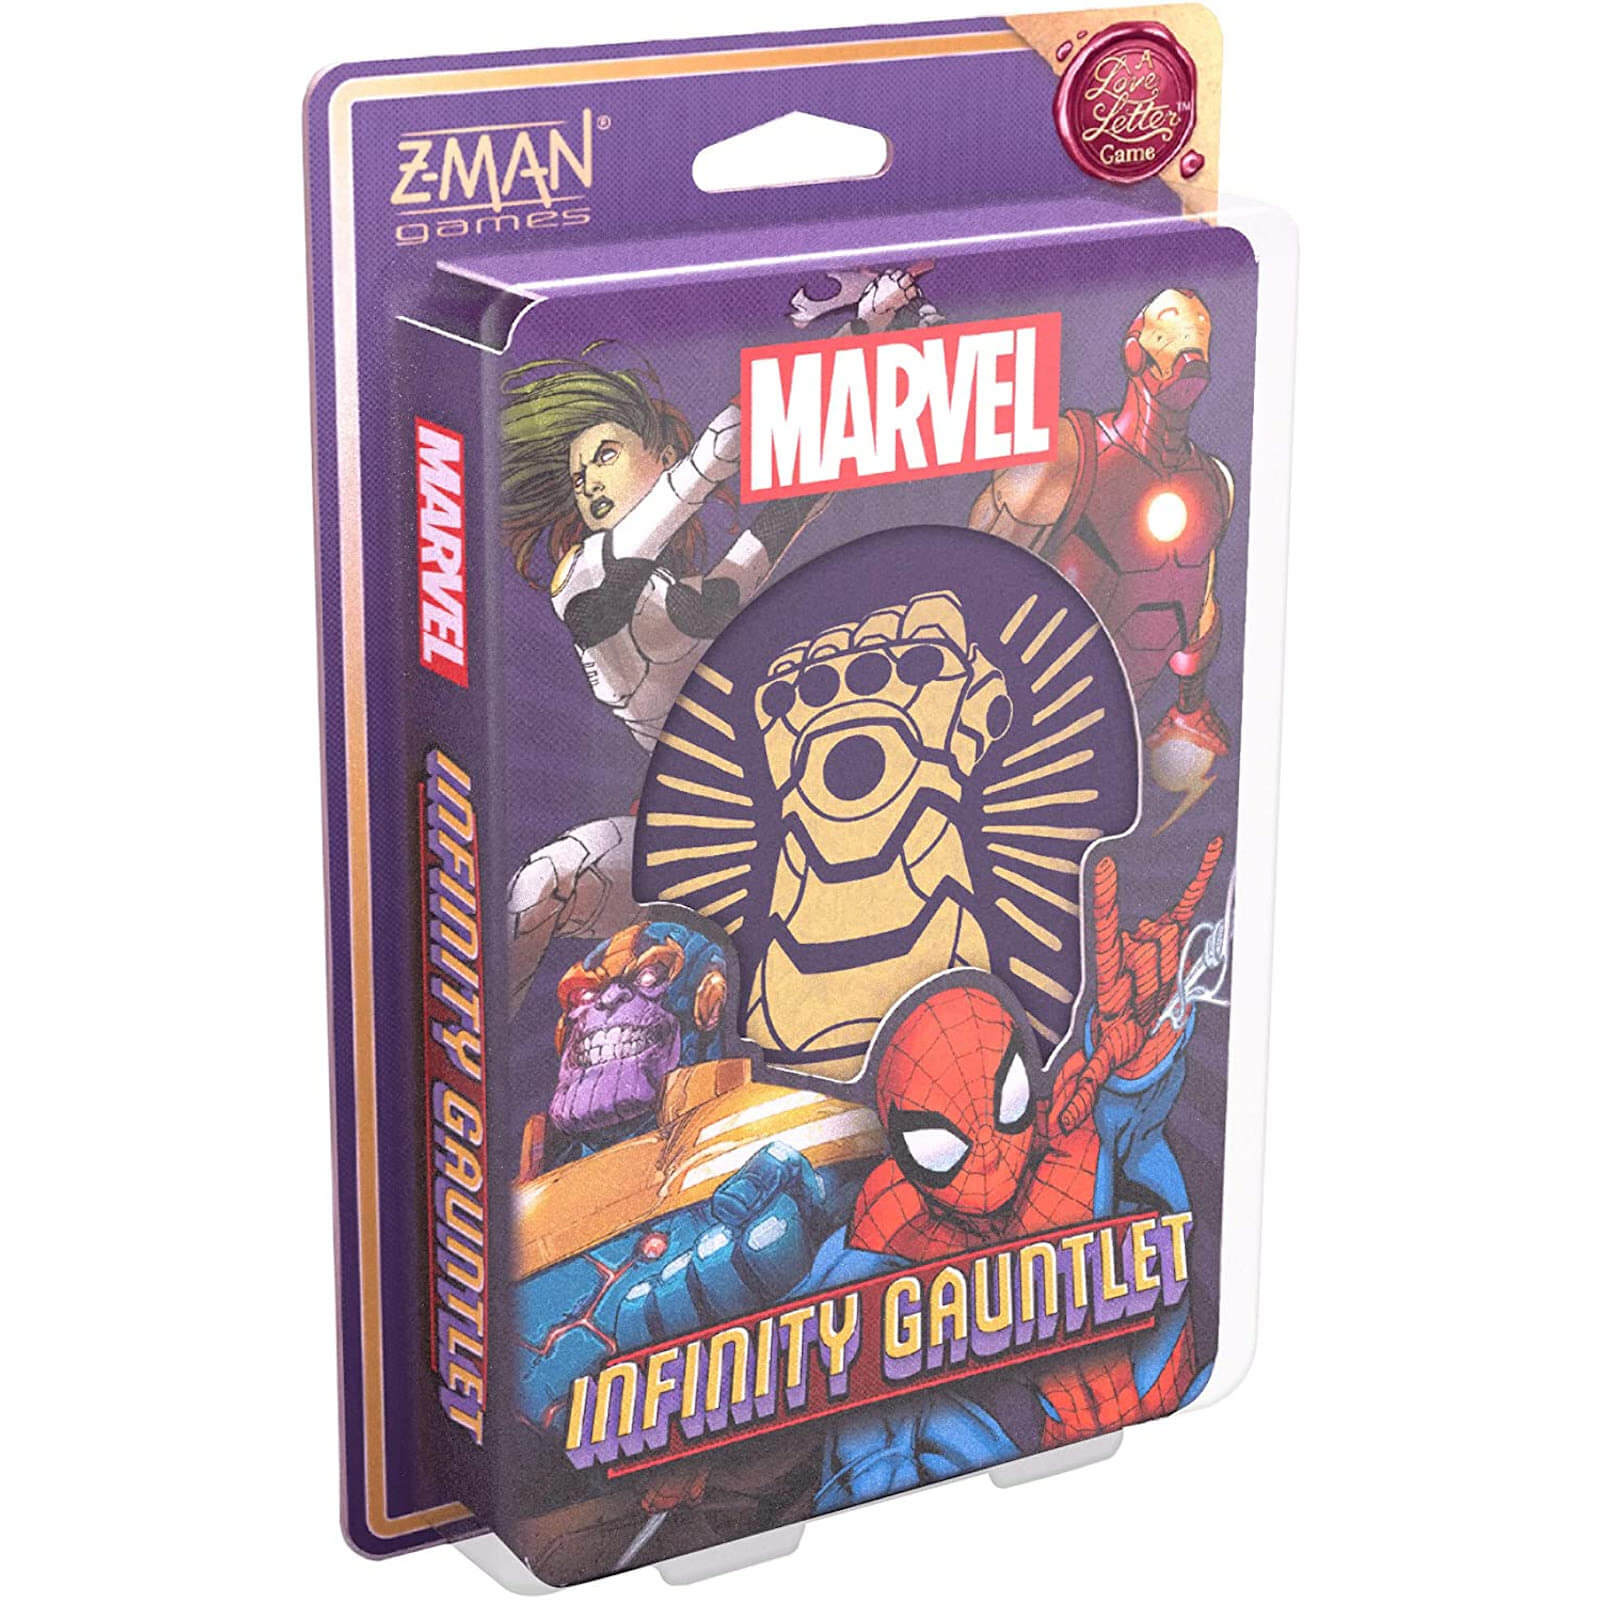 Image of A Love Letter Card Game - Infinity Gauntlet Edition